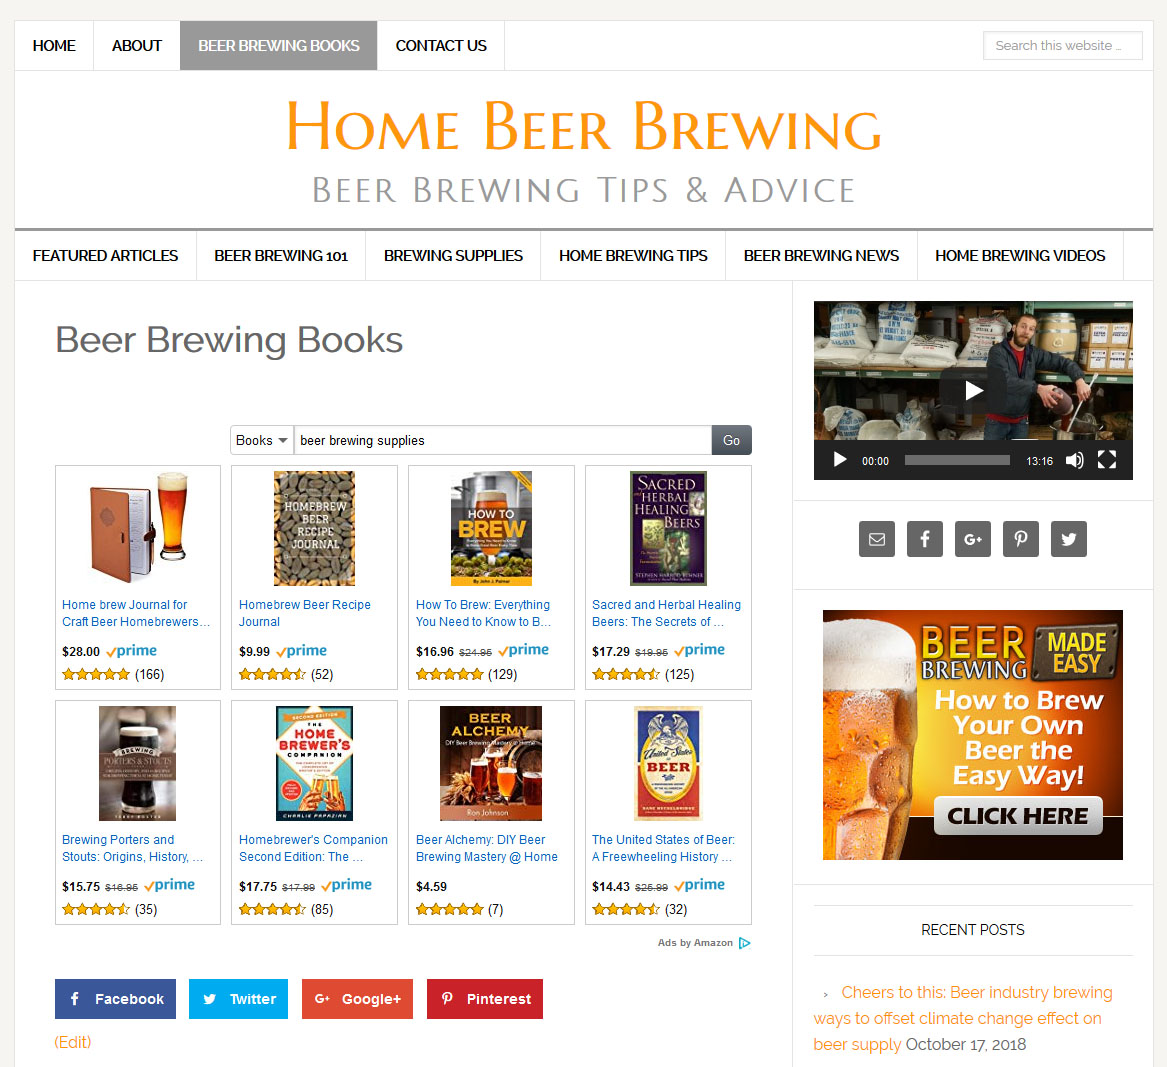 Home Store Website: Home Beer Brewing Website